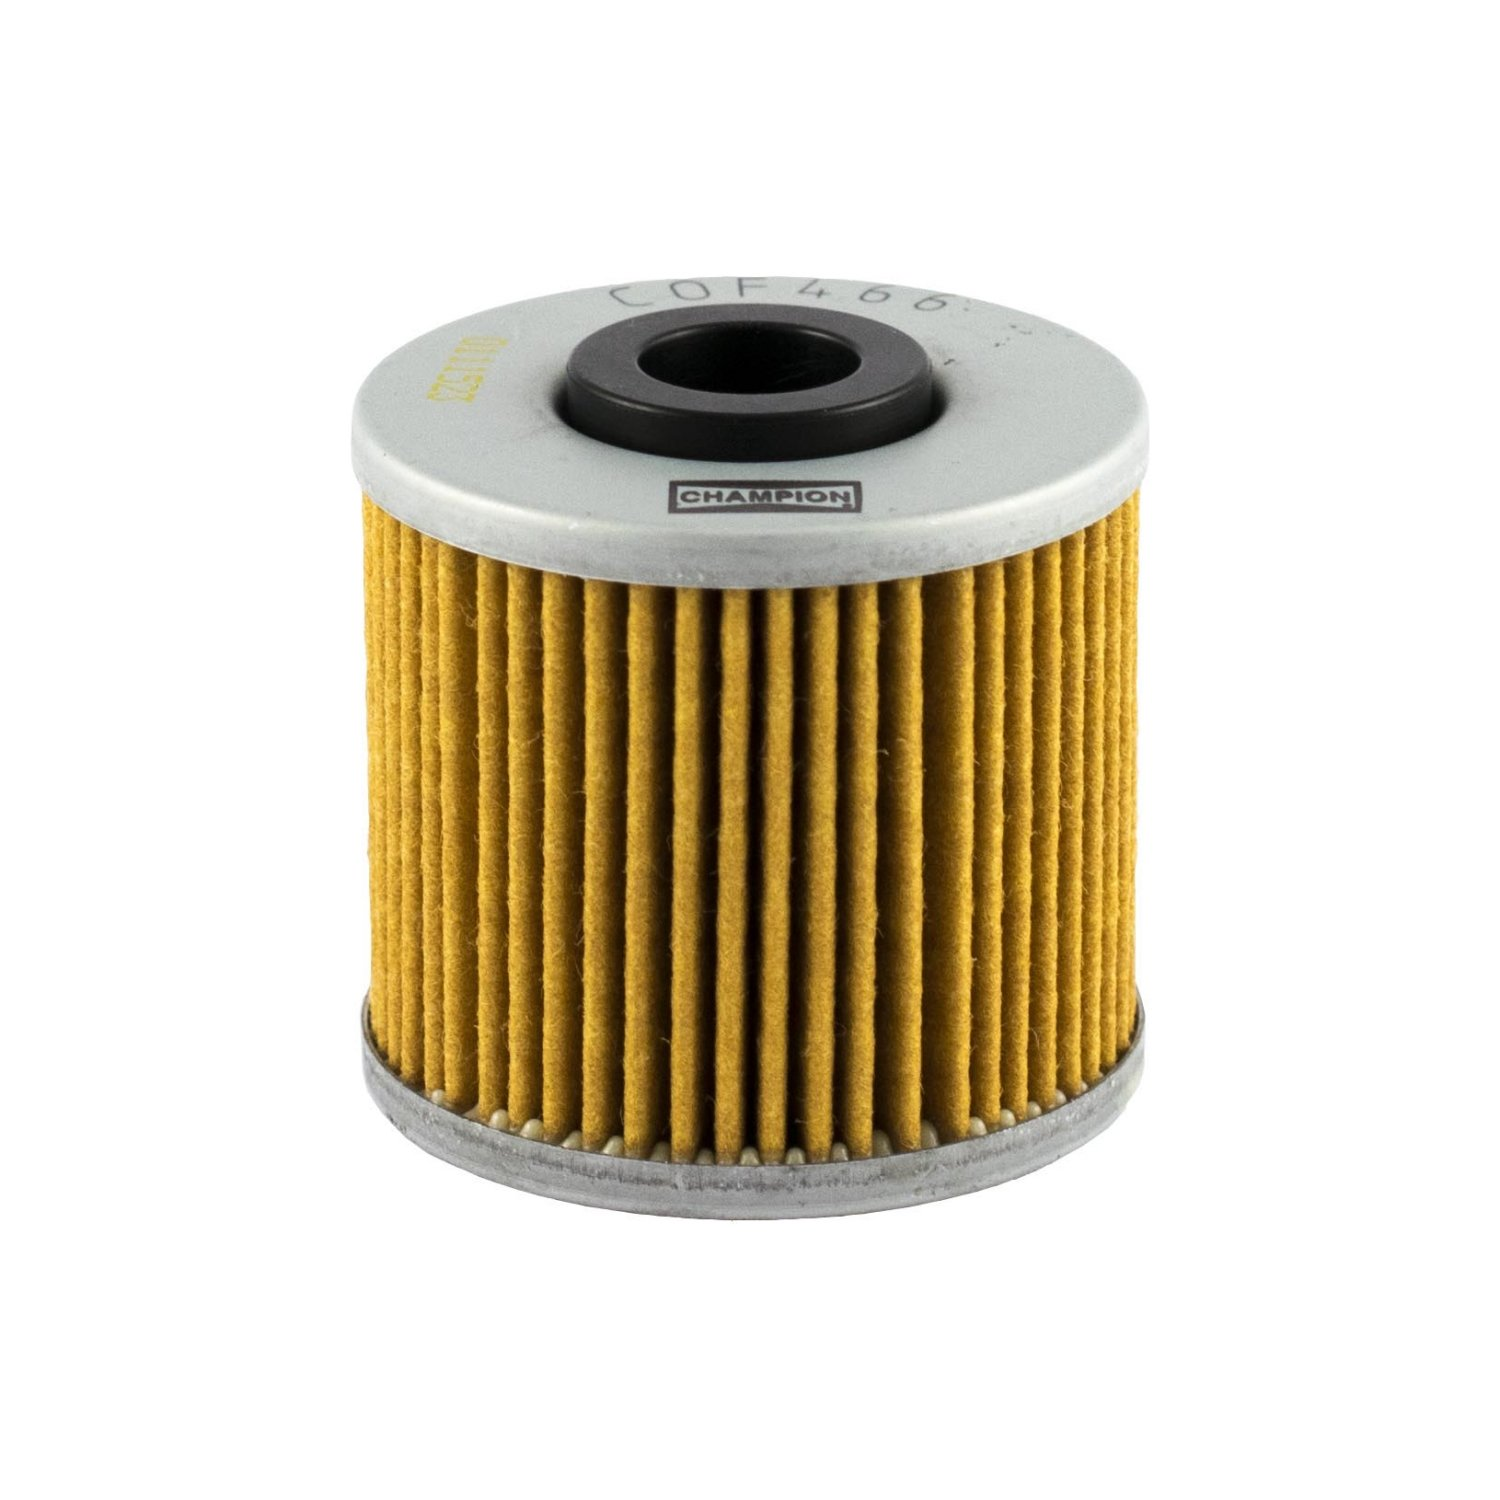 Champion à      -   lfilter cof466   Kymco Downtown 125   -   300   Oil Filter cof466   Kymco Downtown 125   -   300